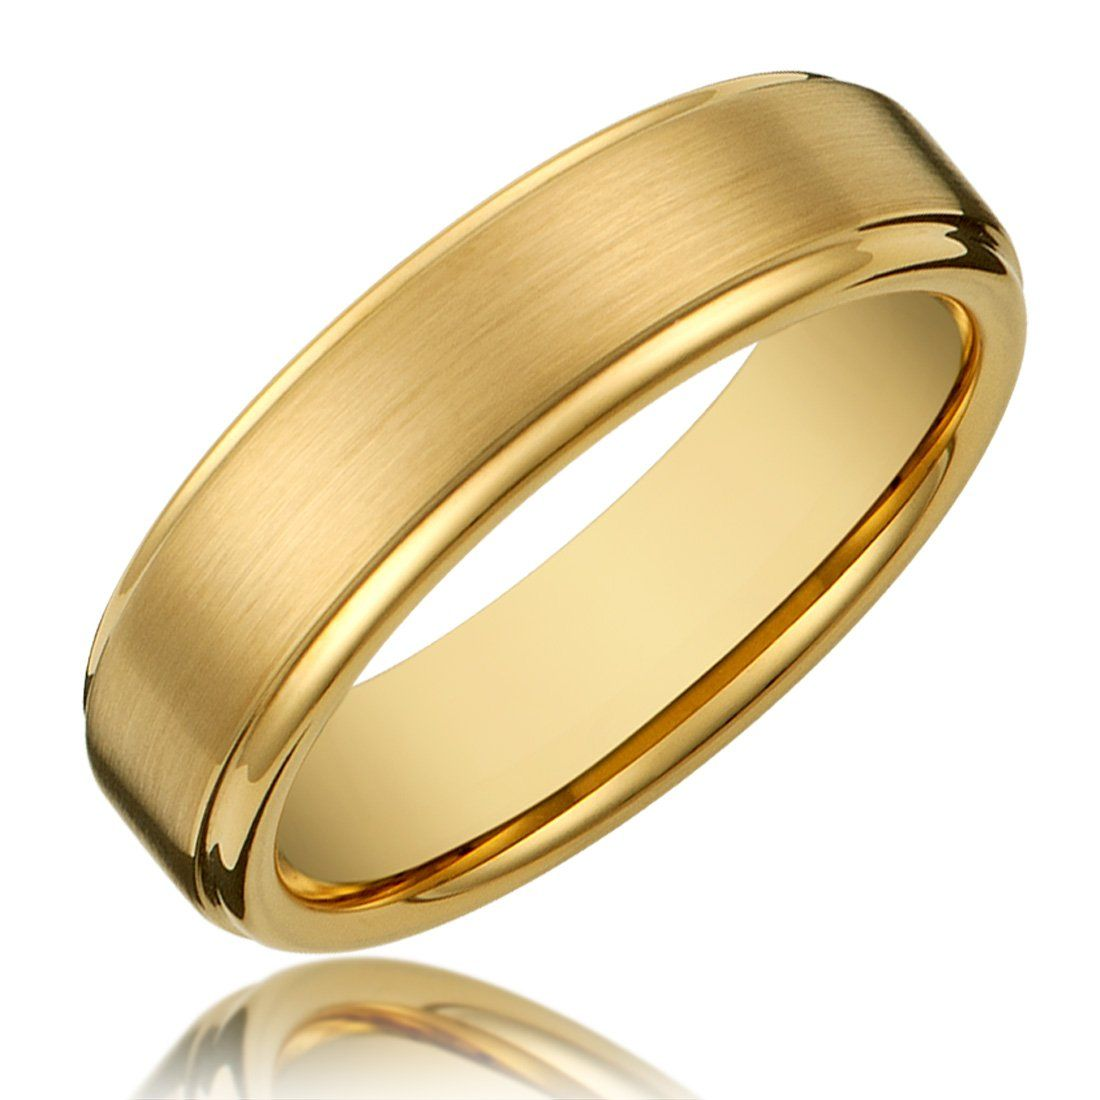 Cavalier Jewelers 6mm Titanium Gold Plated Ring Wedding Band With Flat Brushed Top And Polishe Wedding Ring Bands Gold Band Wedding Ring Titanium Wedding Rings